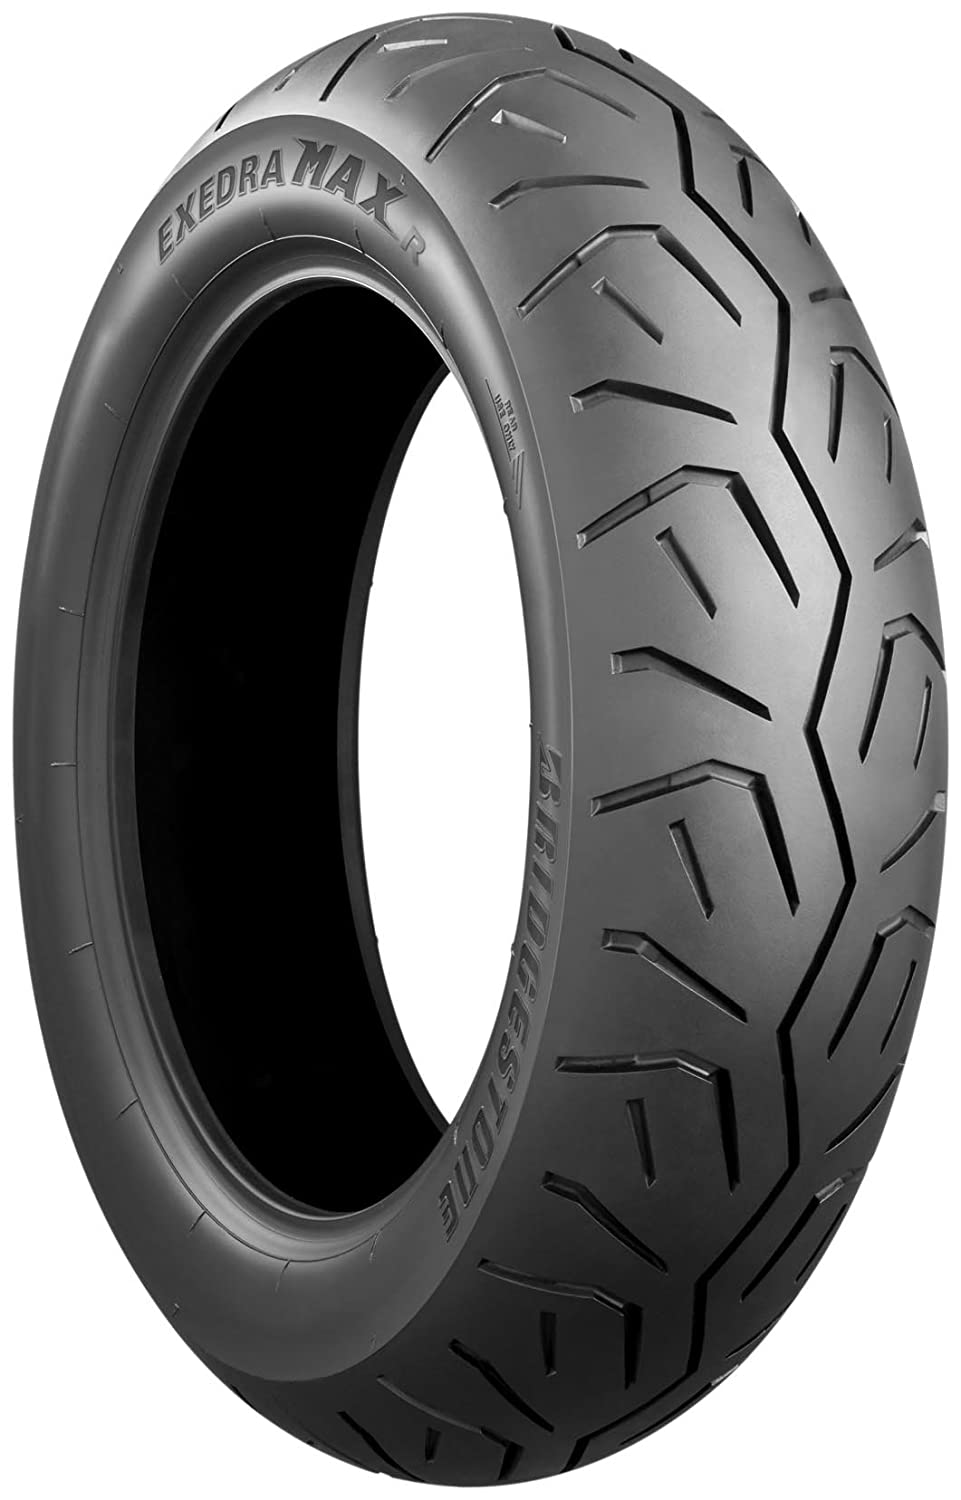 Bridgestone Exedra Max Front 130 90 16 Motorcycle Tire 110 80 Velg 14 Automotive